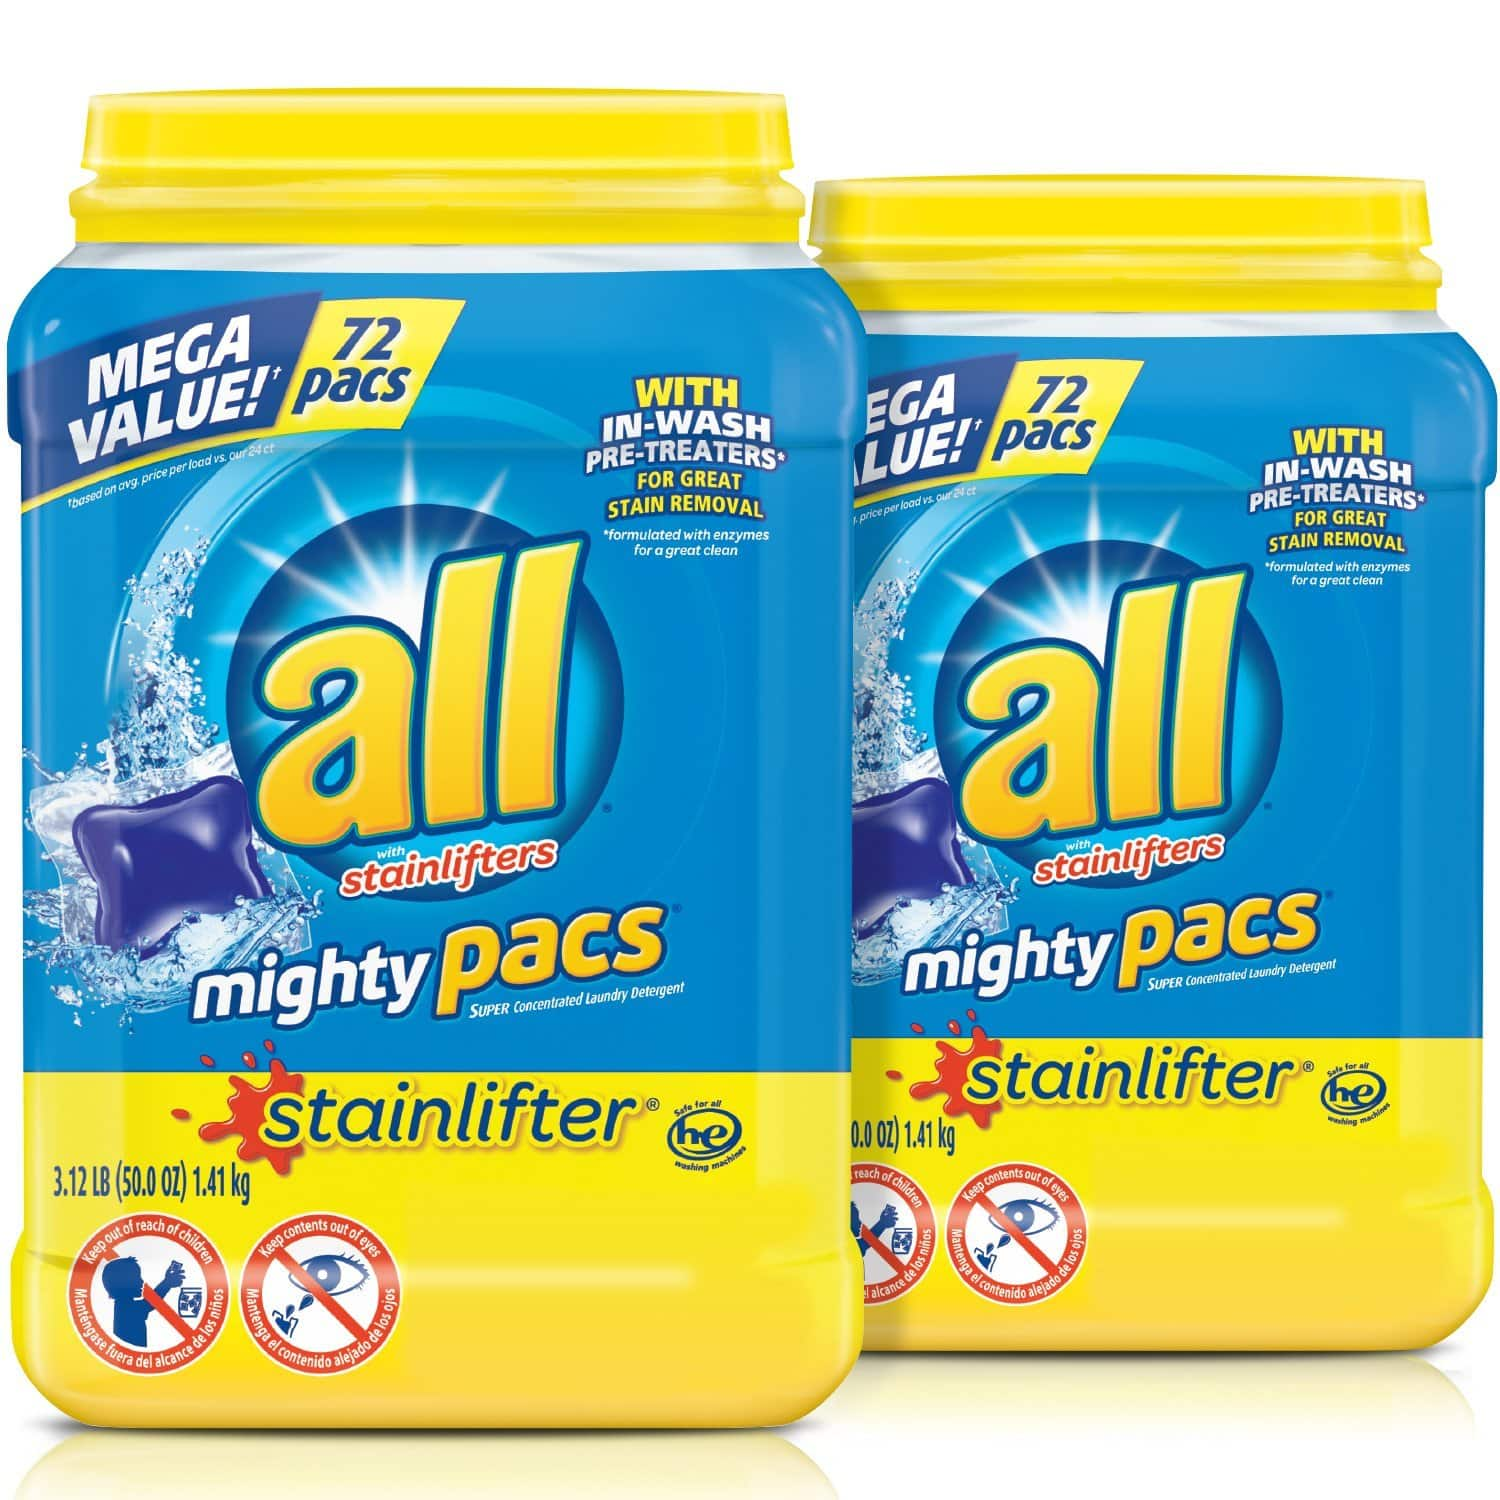 144-Ct all Mighty Pacs Laundry Detergent - Slickdeals.net